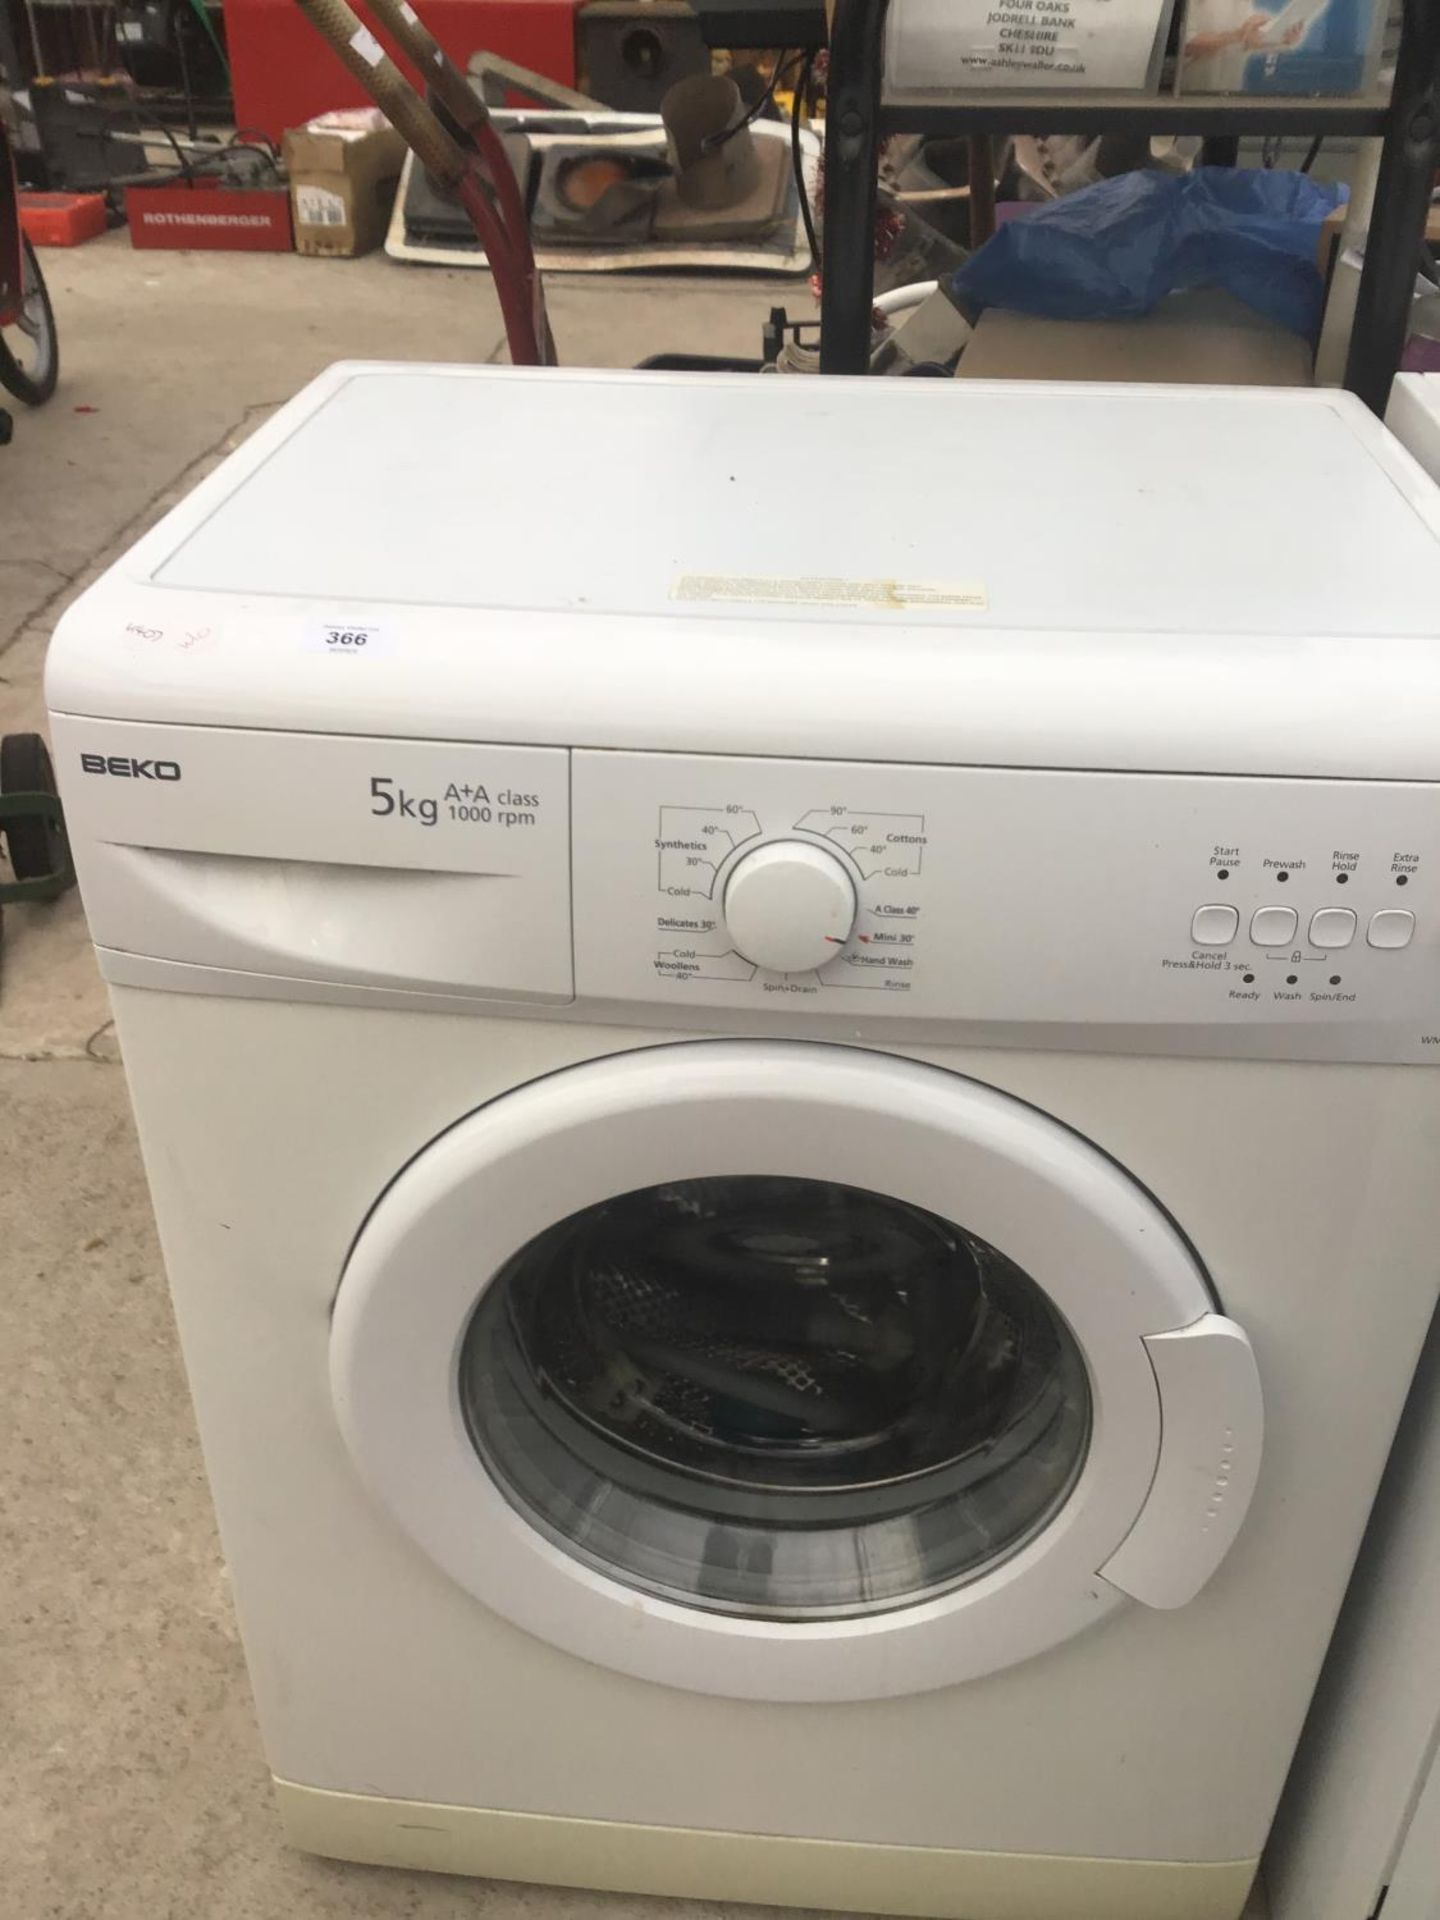 Lot 366 - A BEKO WASHING MACHINE IN CLEAN CONDITION